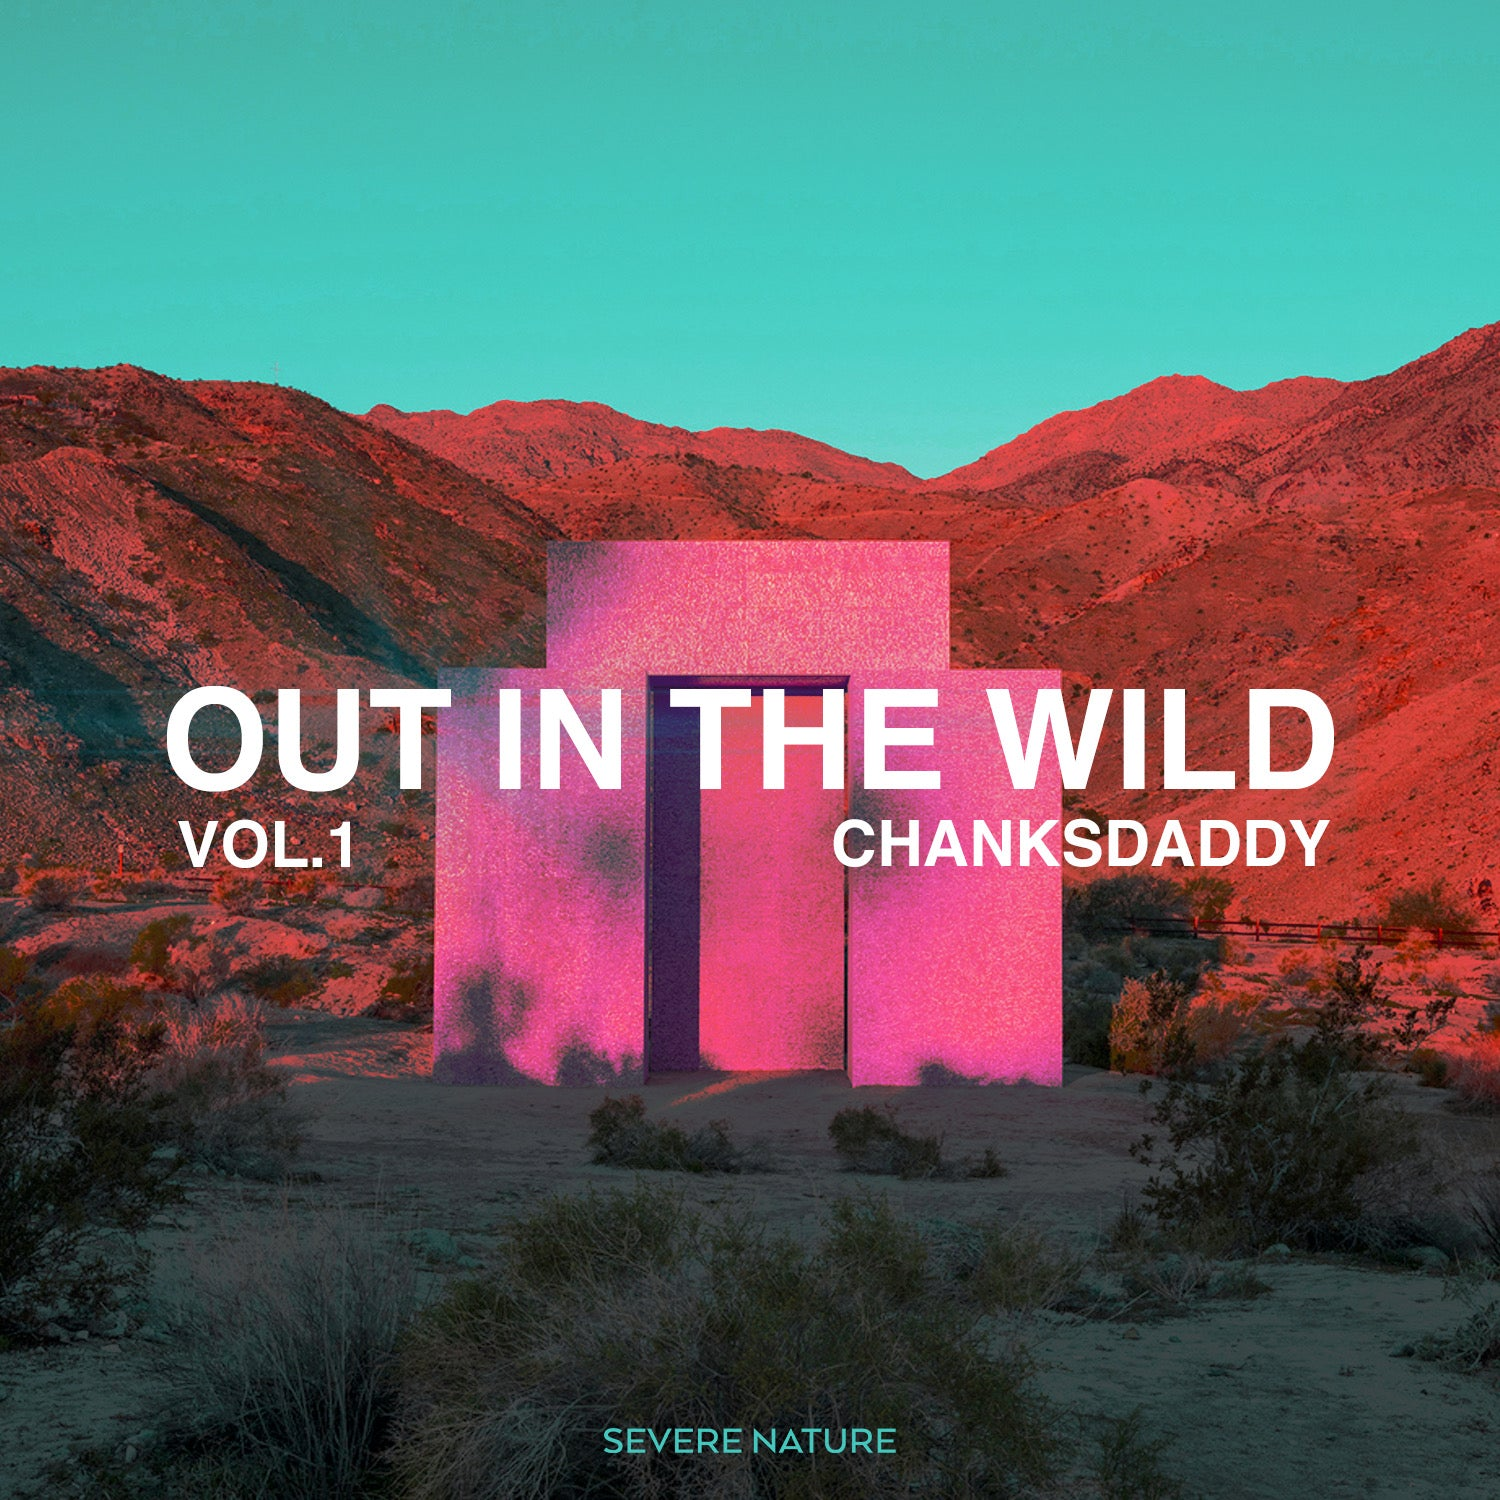 Out In The Wild Vol. 1 Curated by Chanksdaddy